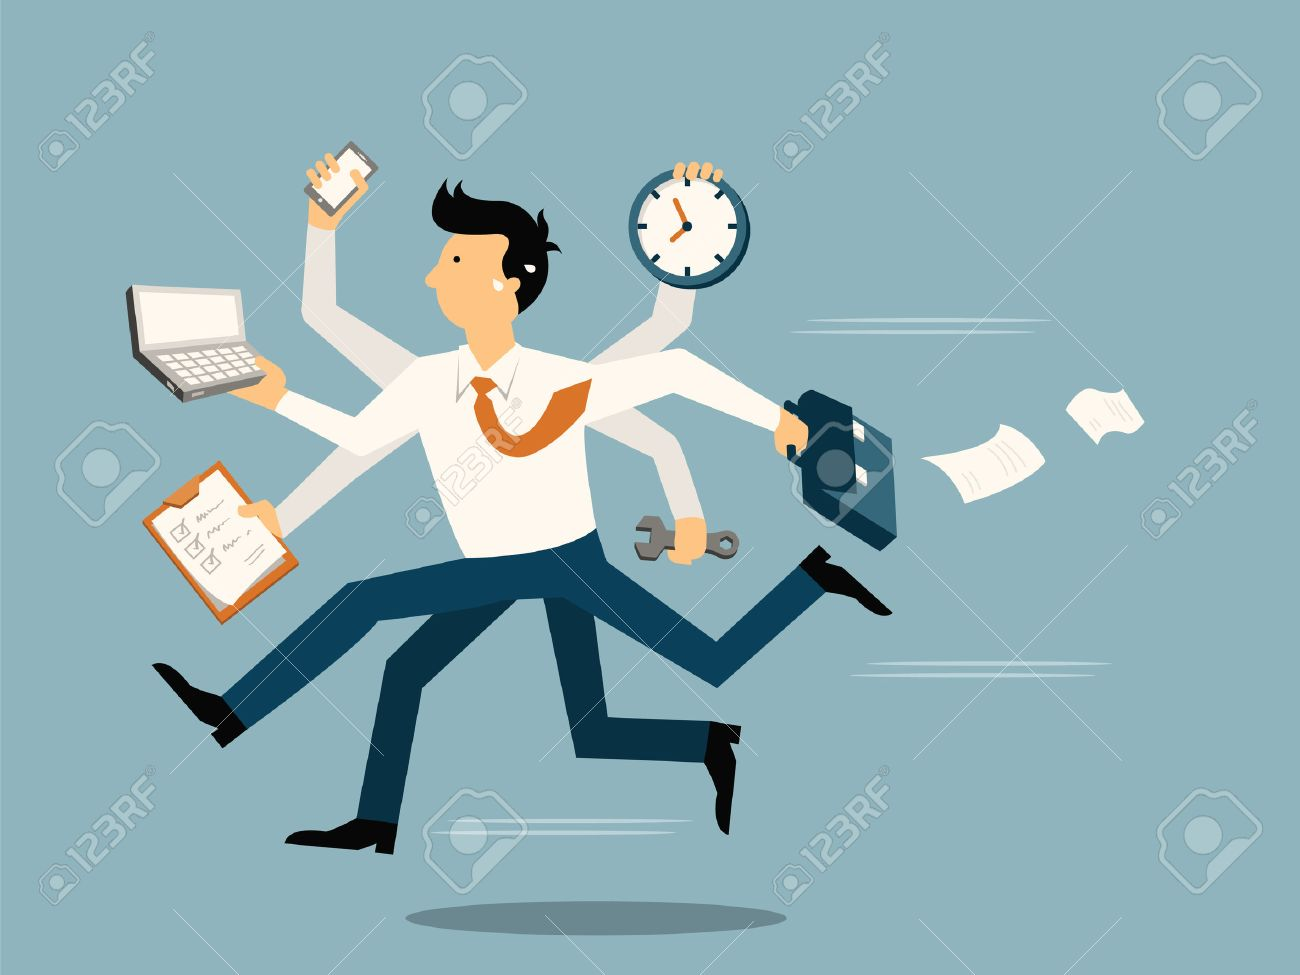 Businessman running in a hurry with many hands holding time, smart phone, laptop, wrench, papernote and briefcase, business concept in very busy or a lot of work to do. - 29115156